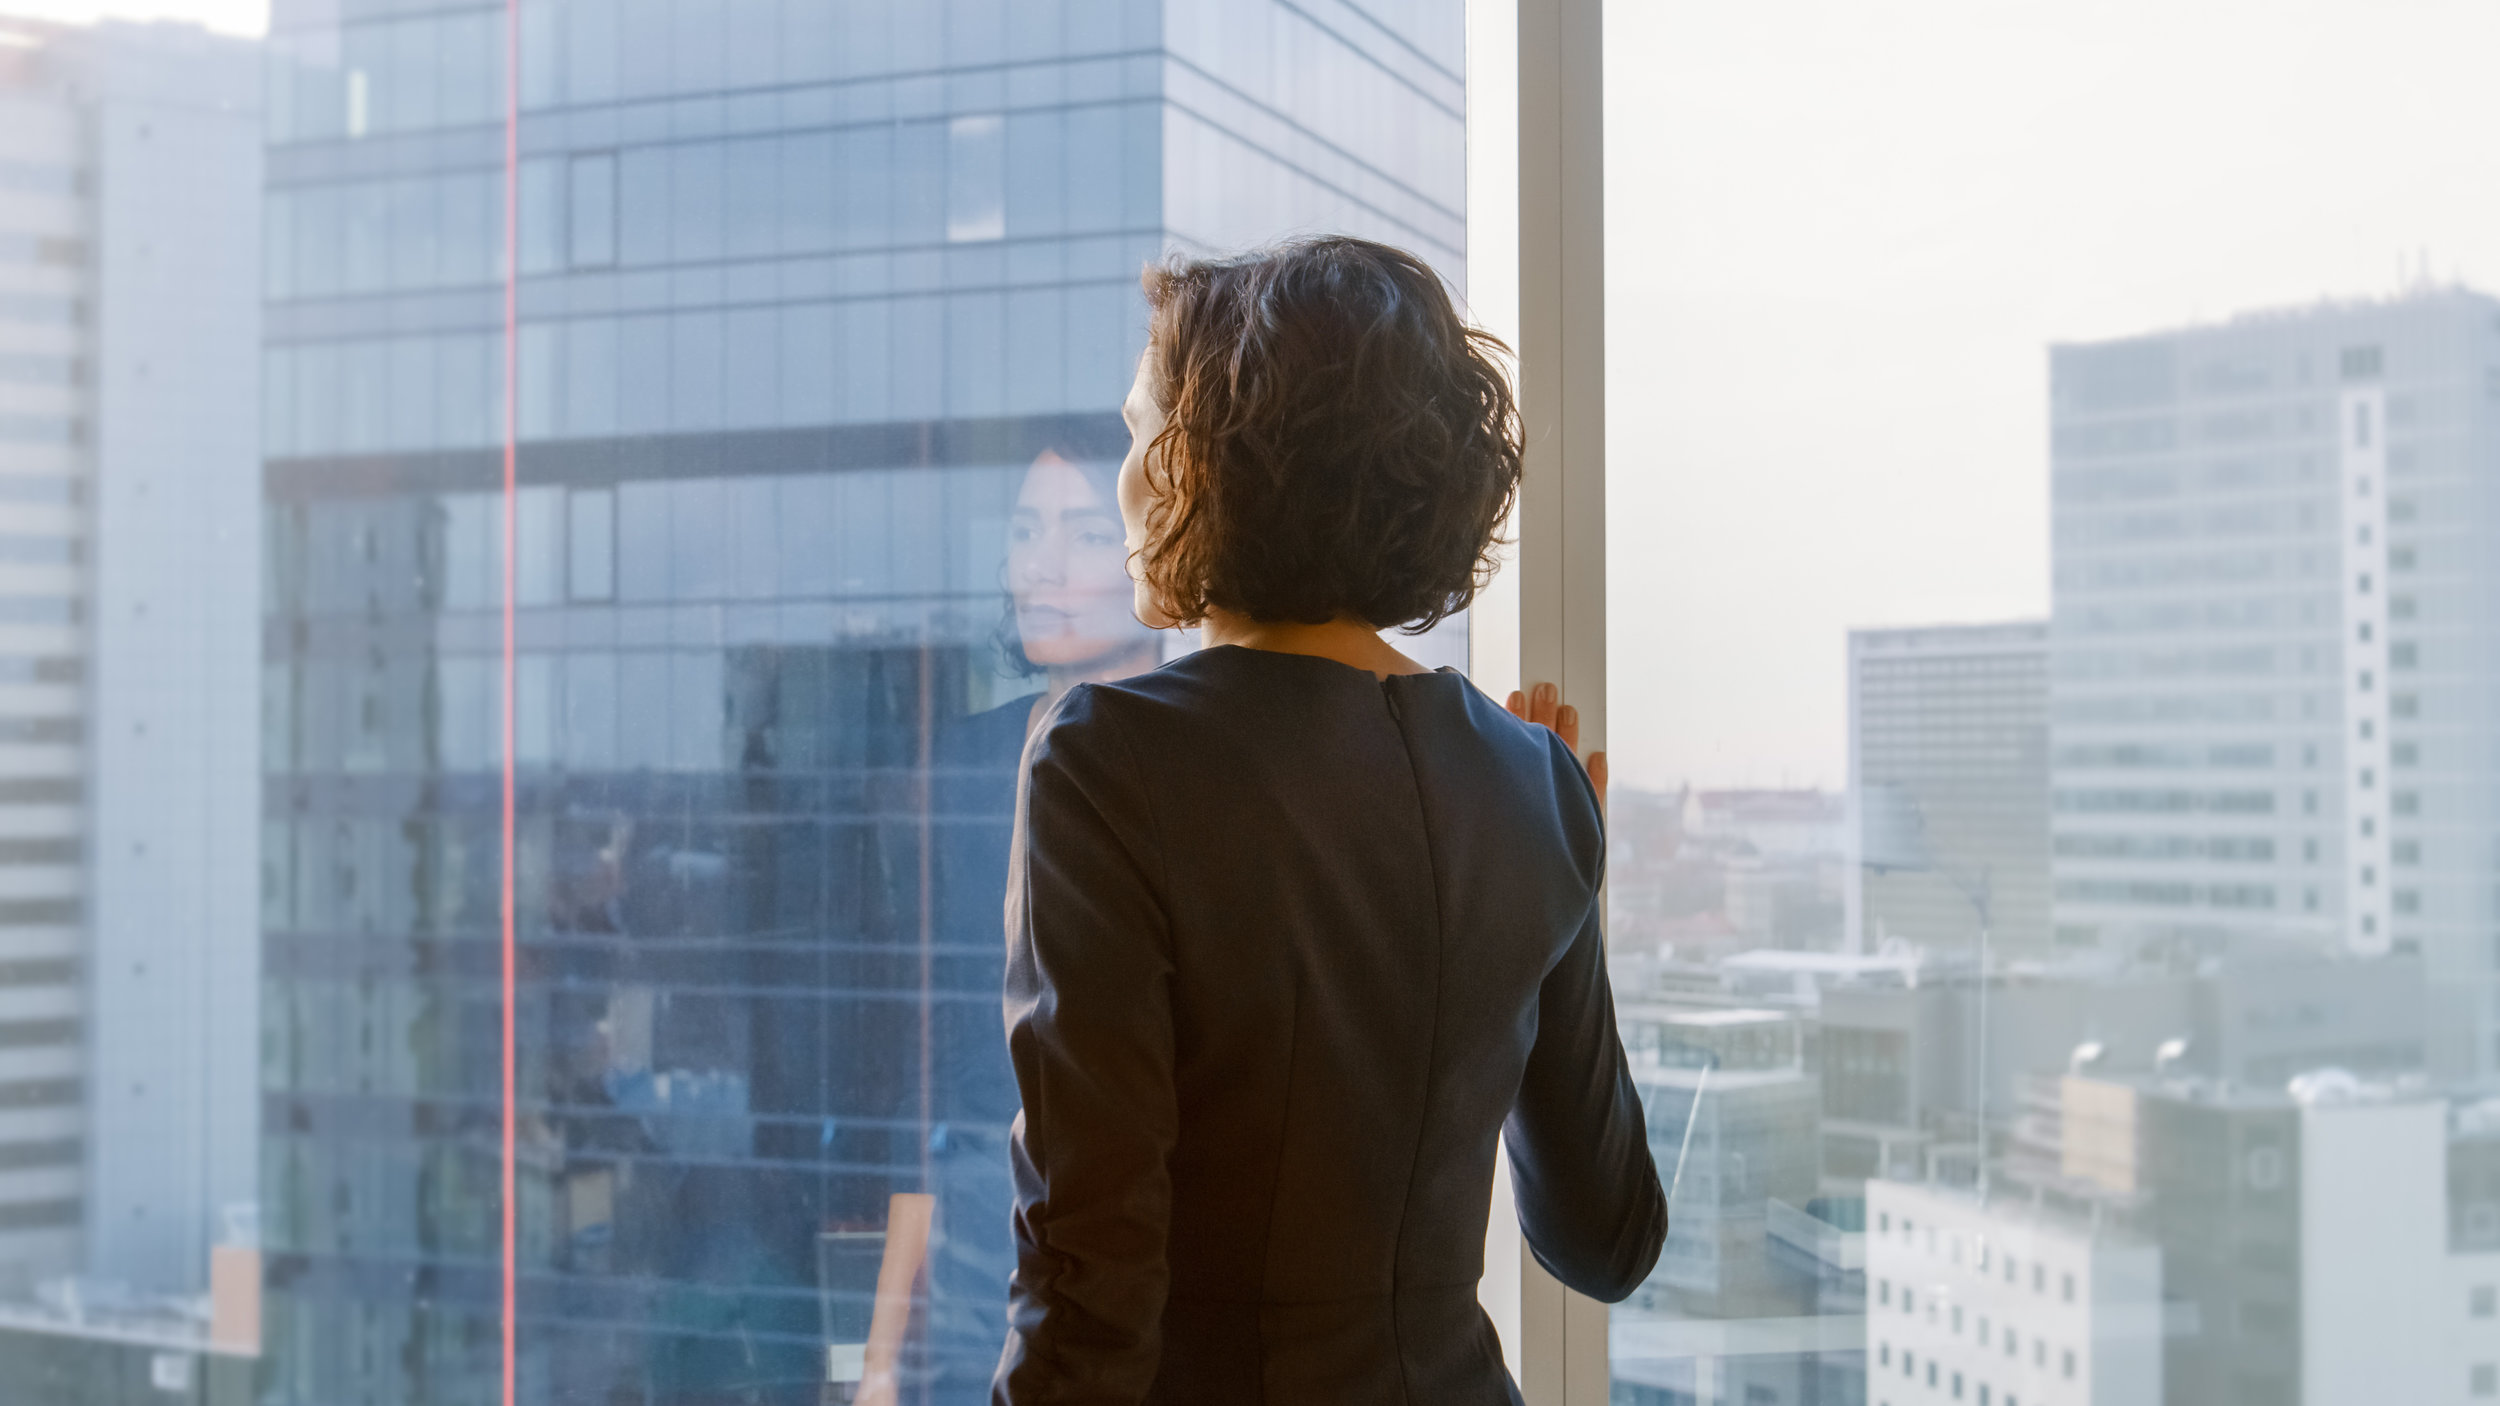 Shot-of-the-Successful-Businesswoman-in-a-Stylish-Dress-in-Her-Office-Looking-out-of-the-Window-Thoughtfully.-Modern-Business-Office-with-Personal-Computer-and-Big-City-View.-1069160082_5120x2880.jpeg